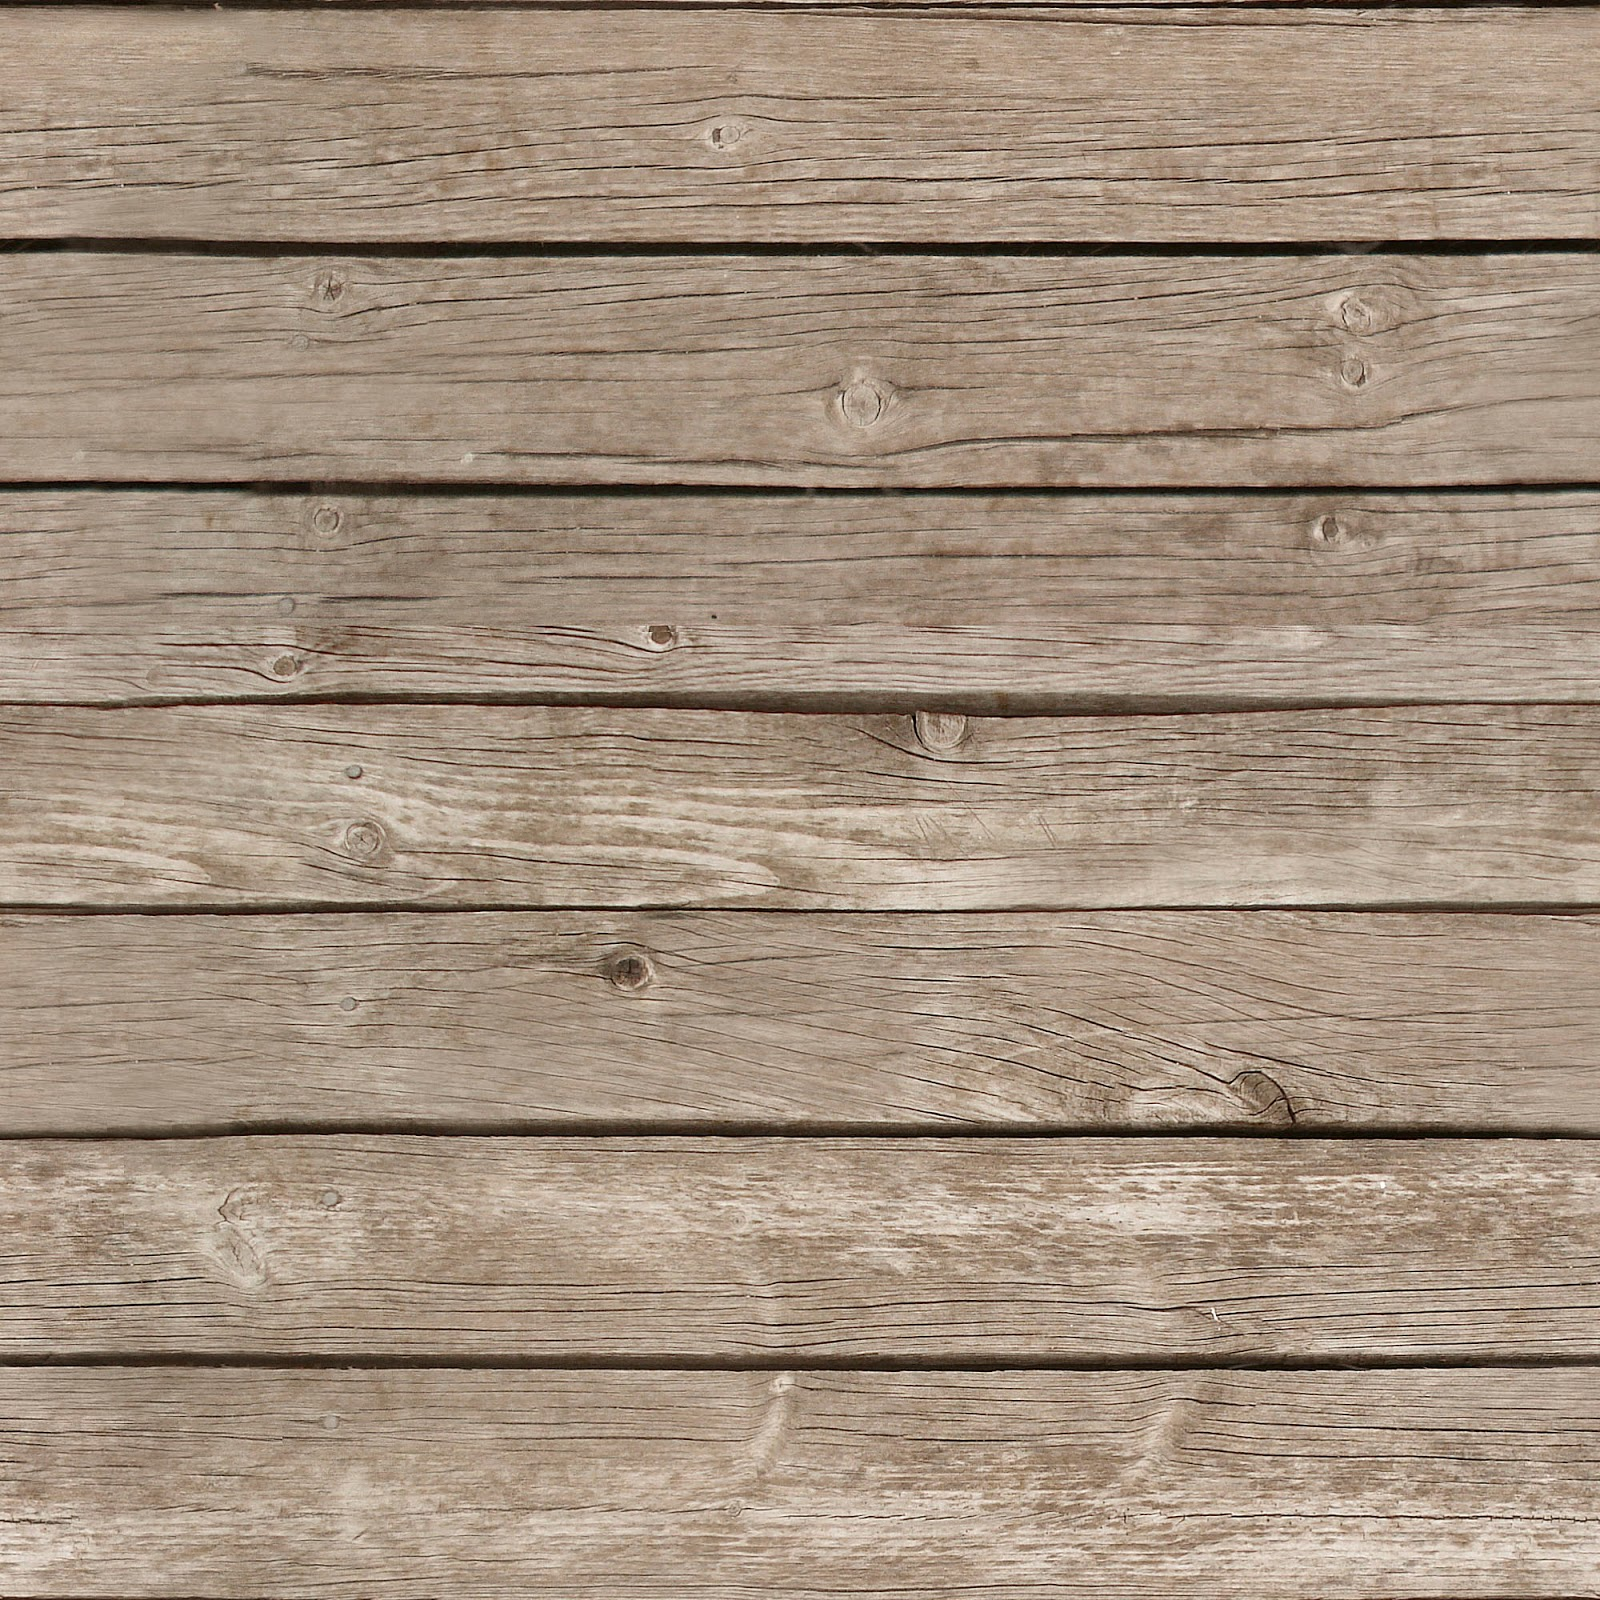 Wood Plank Texture Seamless ~ Tileable wood planks maps texturise free seamless